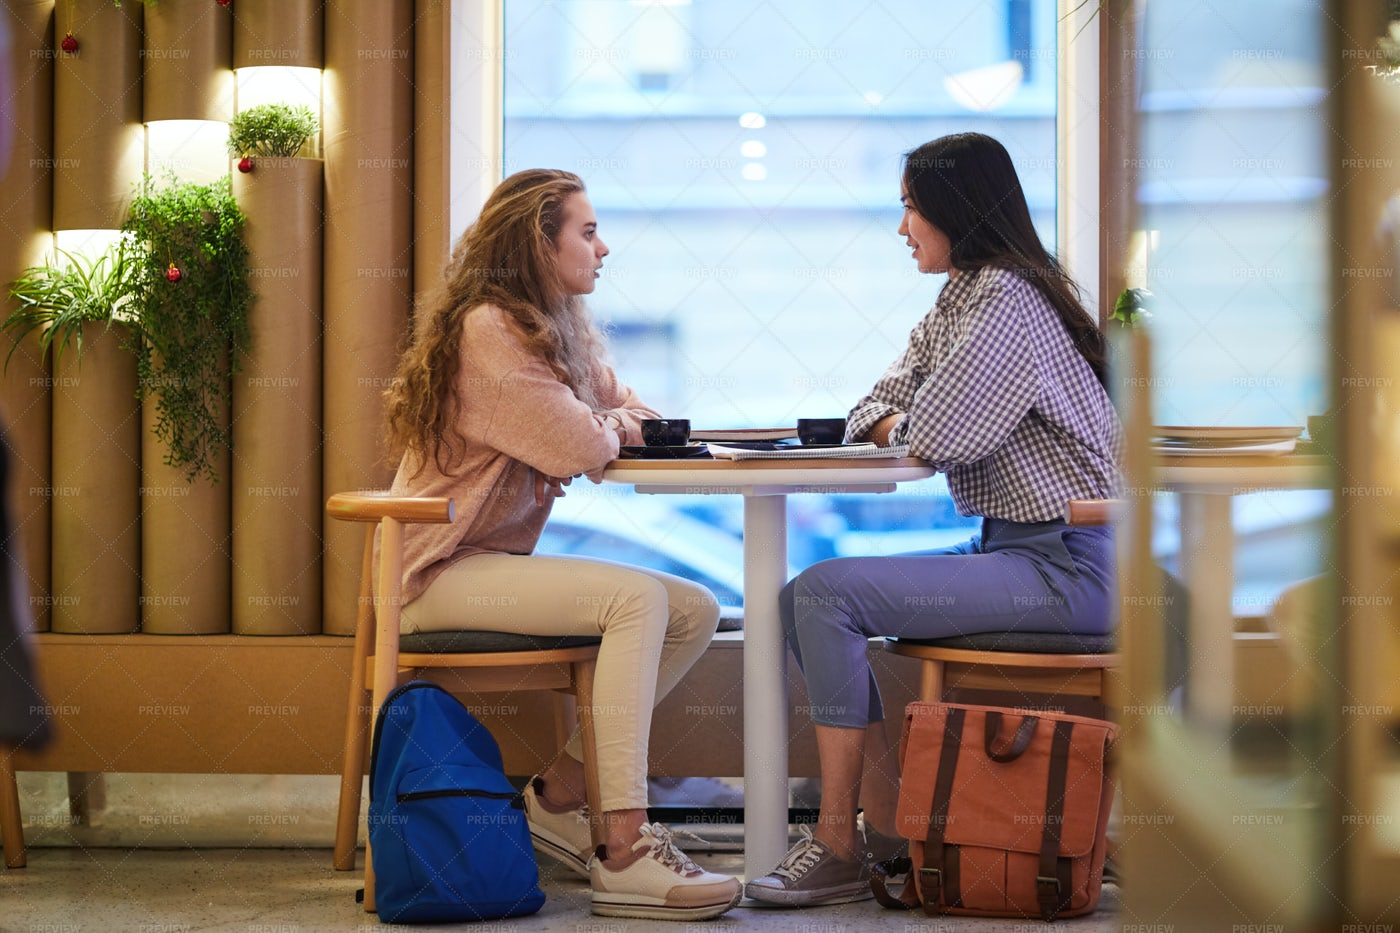 Friendly Girls In Cafe: Stock Photos